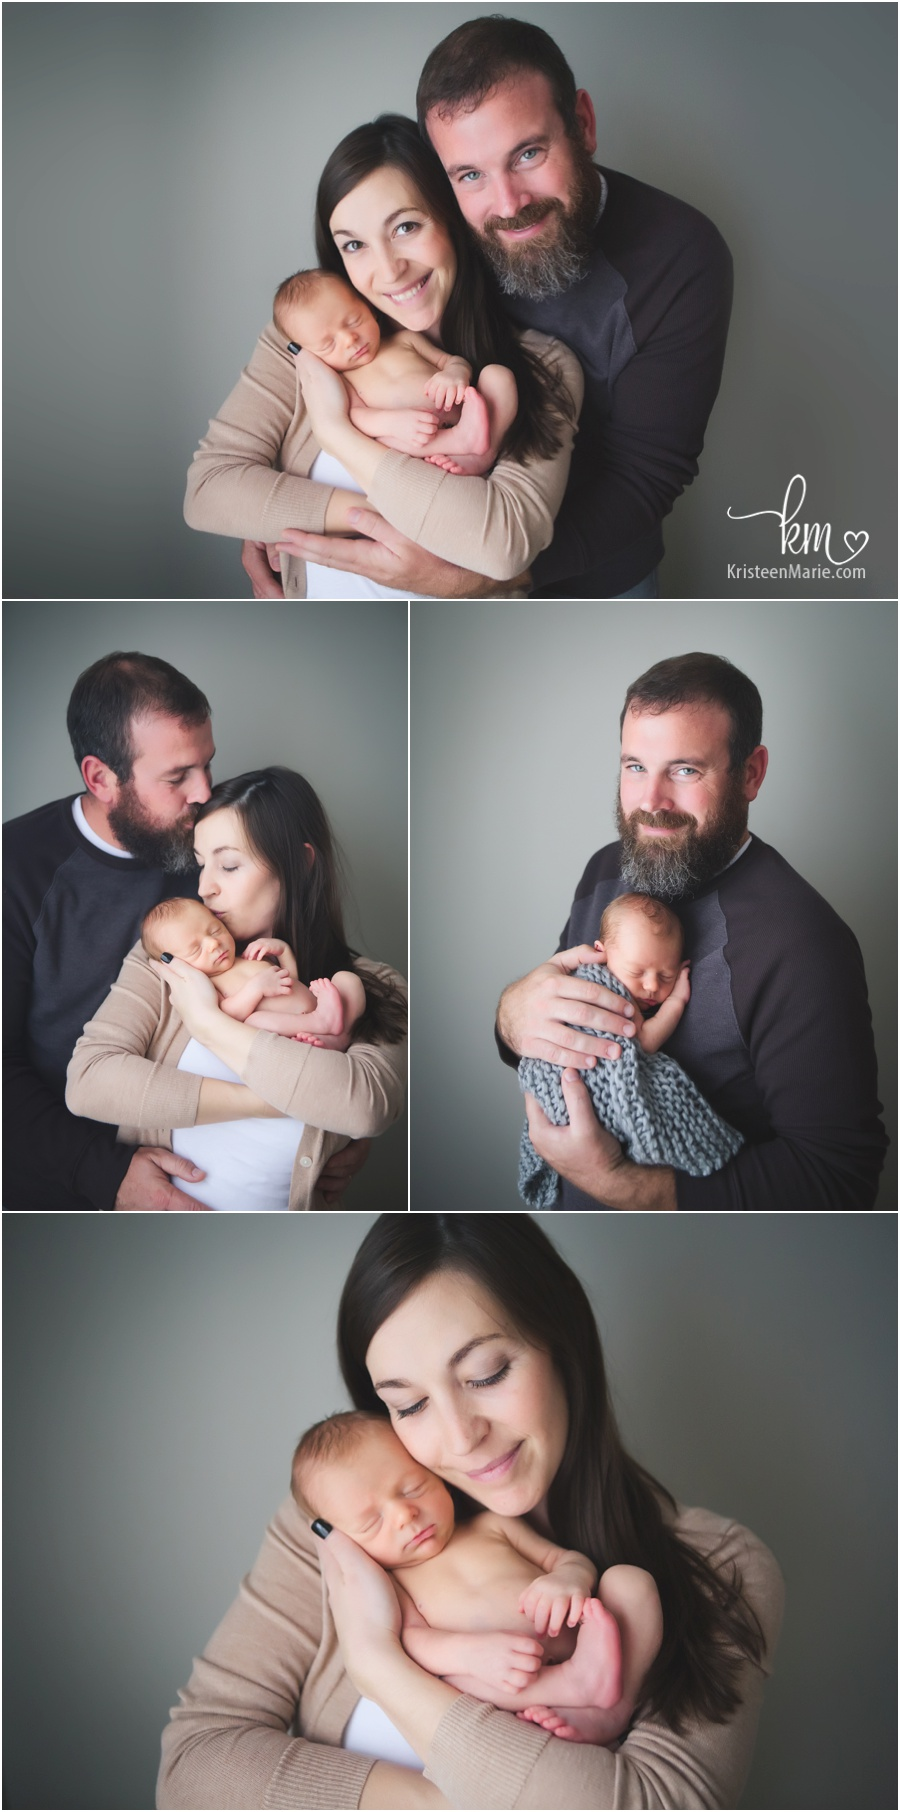 family photography poses with newborn baby - Family from Noblesville, IN